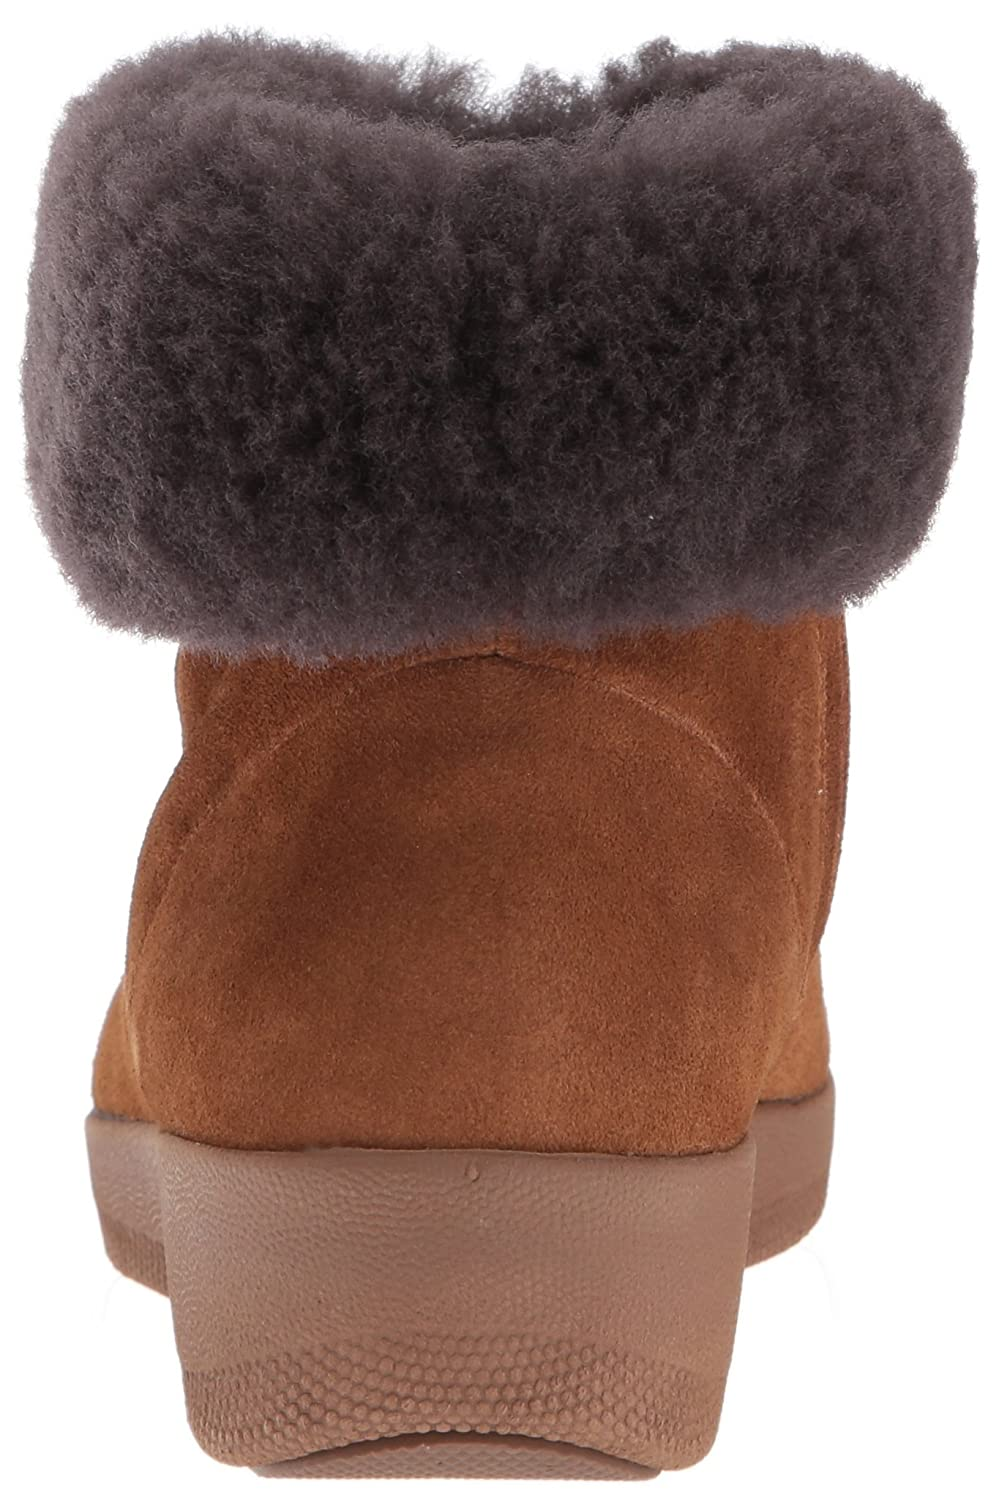 4d1c8e1846cd ... FitFlop Women s Skatebootie Suede 10 Shearling Ankle Boot B06XG579CD 10  Suede B(M) US ...